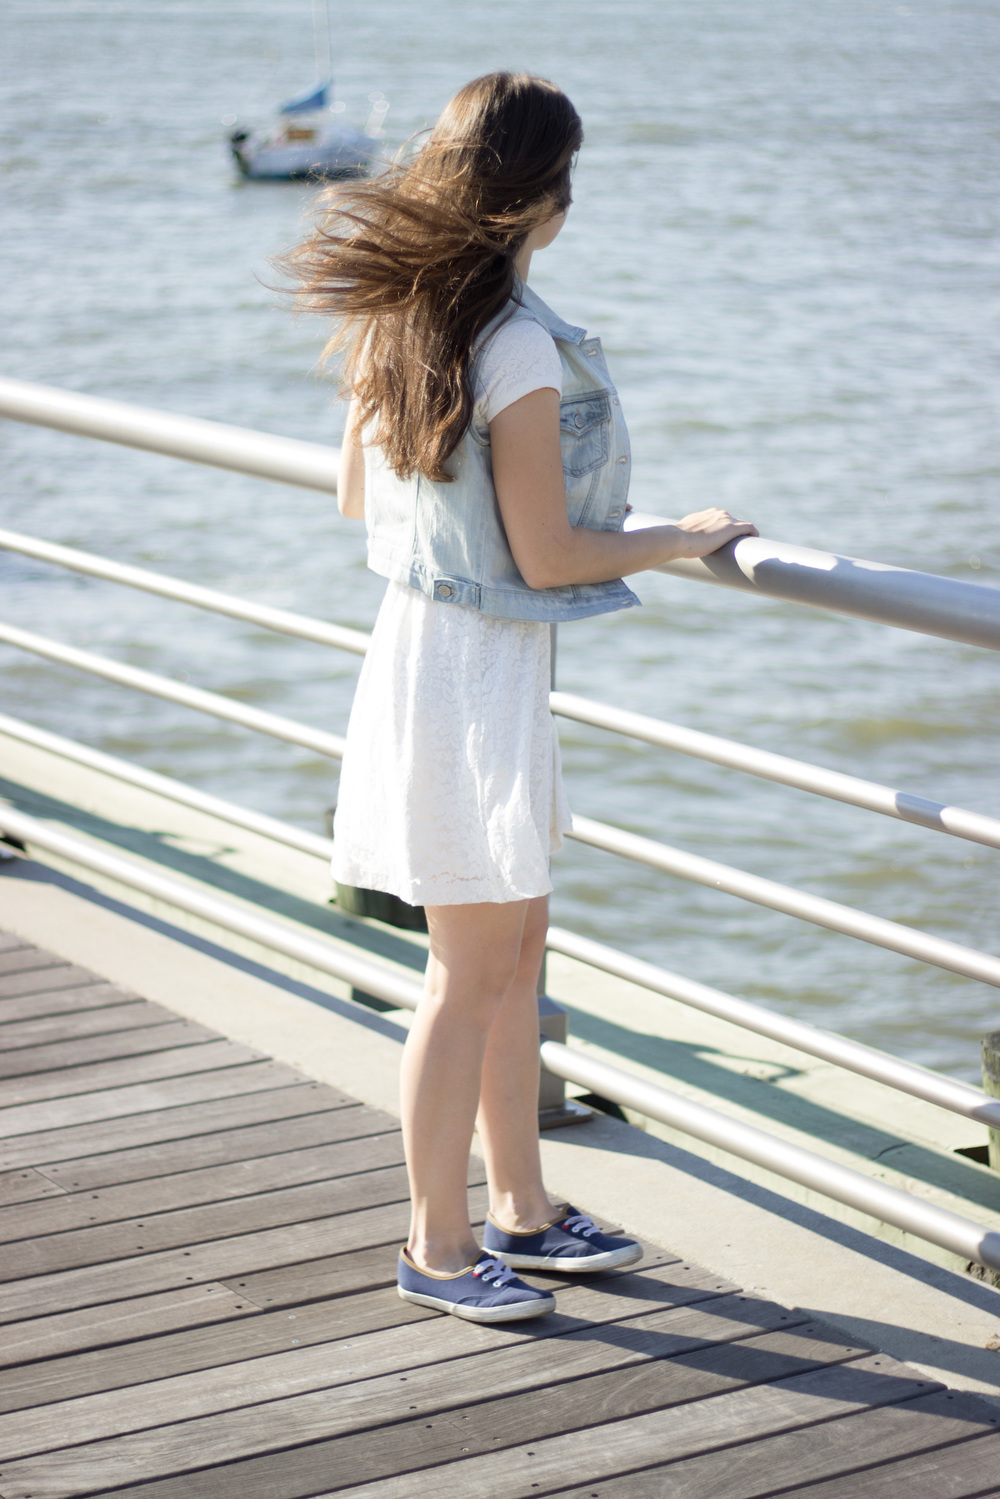 katya wind hudson denim white dress irra korrelat walksmilesnap new york senior photo sun.jpg